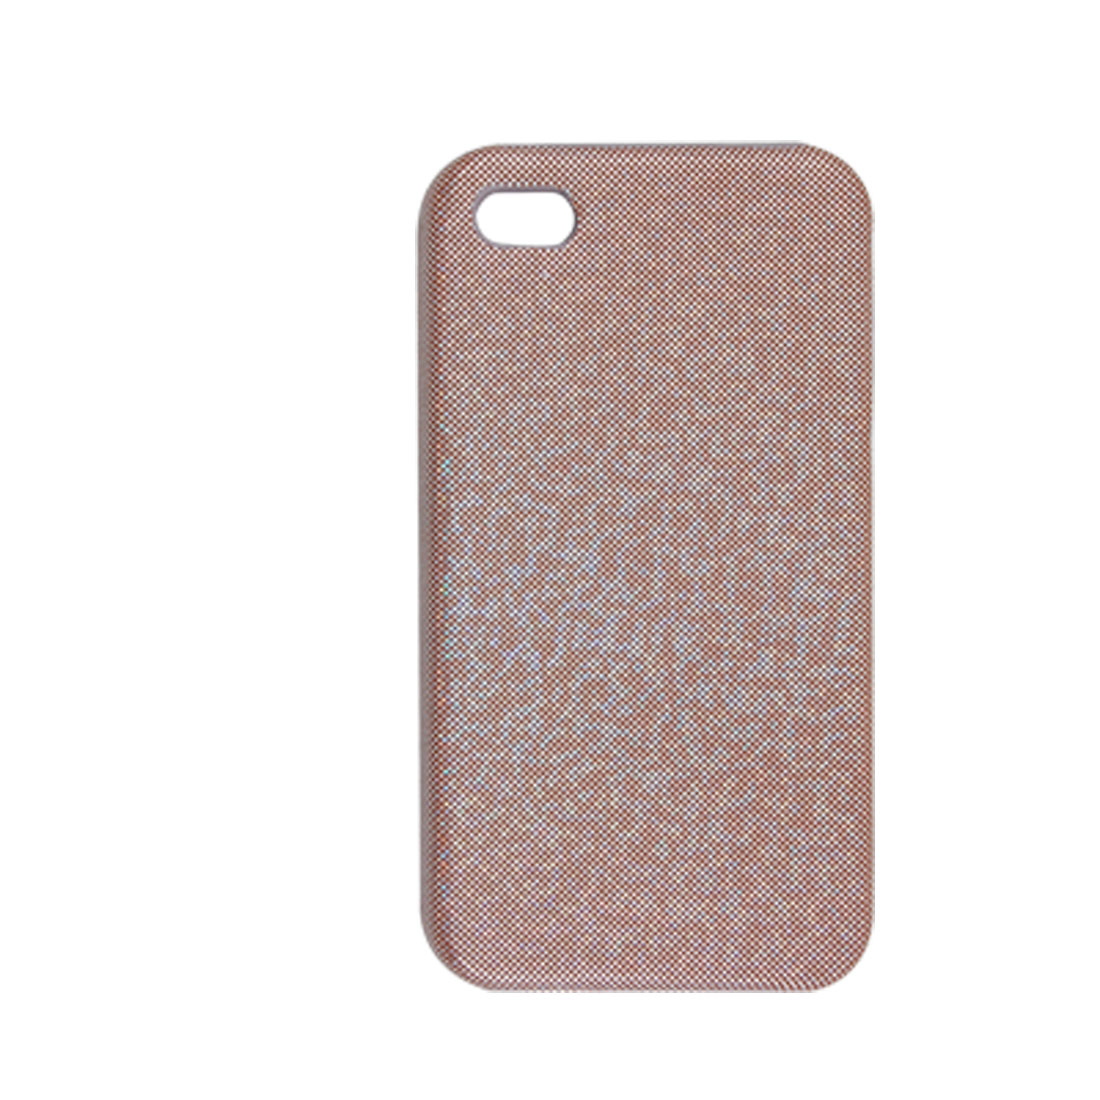 Faux Leather Coated Shiny Light Brown Back Cover for iPhone 4 4G